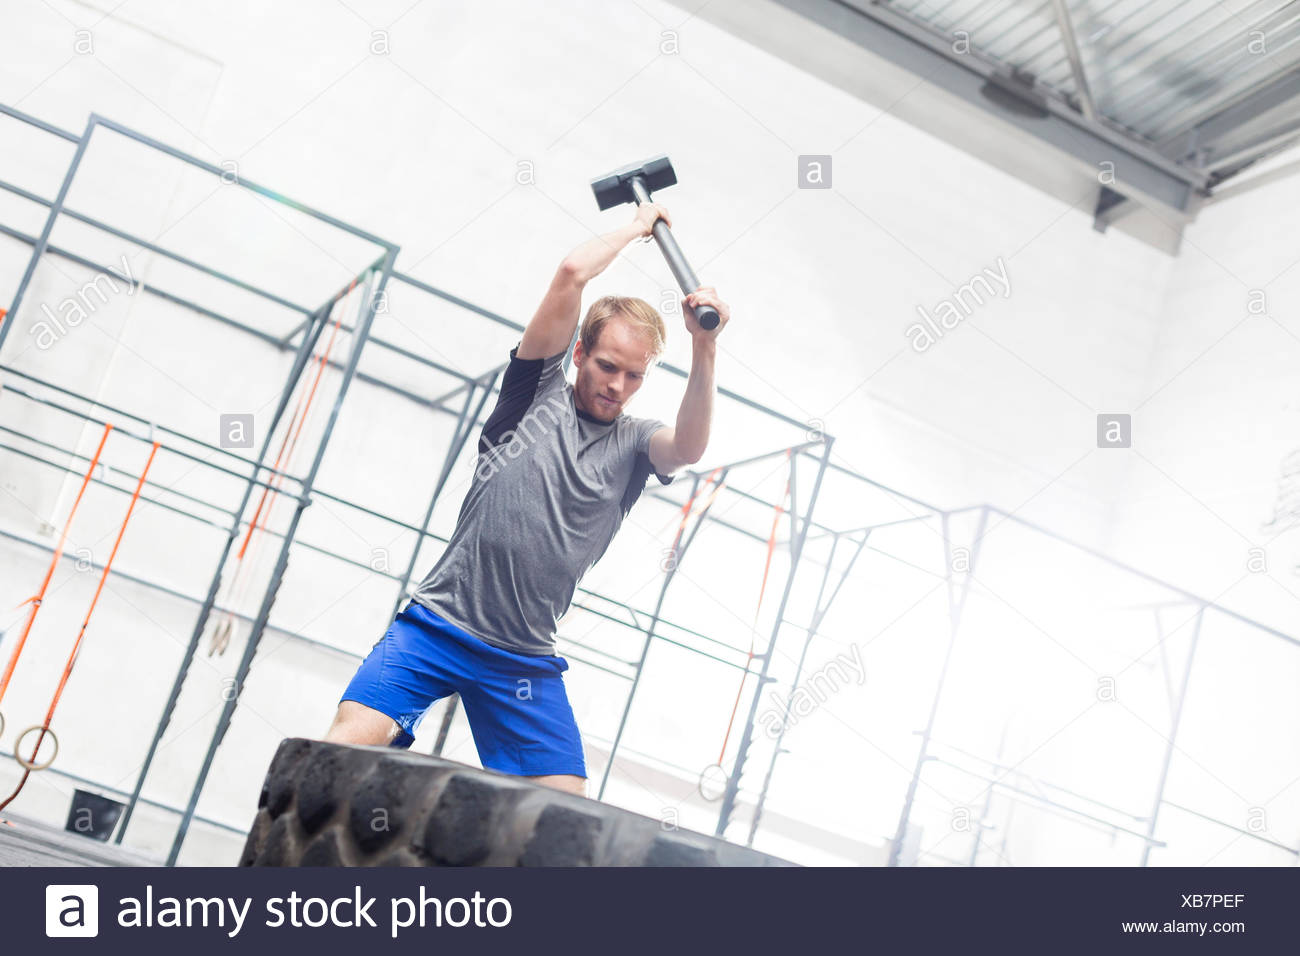 Man hitting tire with sledgehammer in crossfit gym - Stock Image